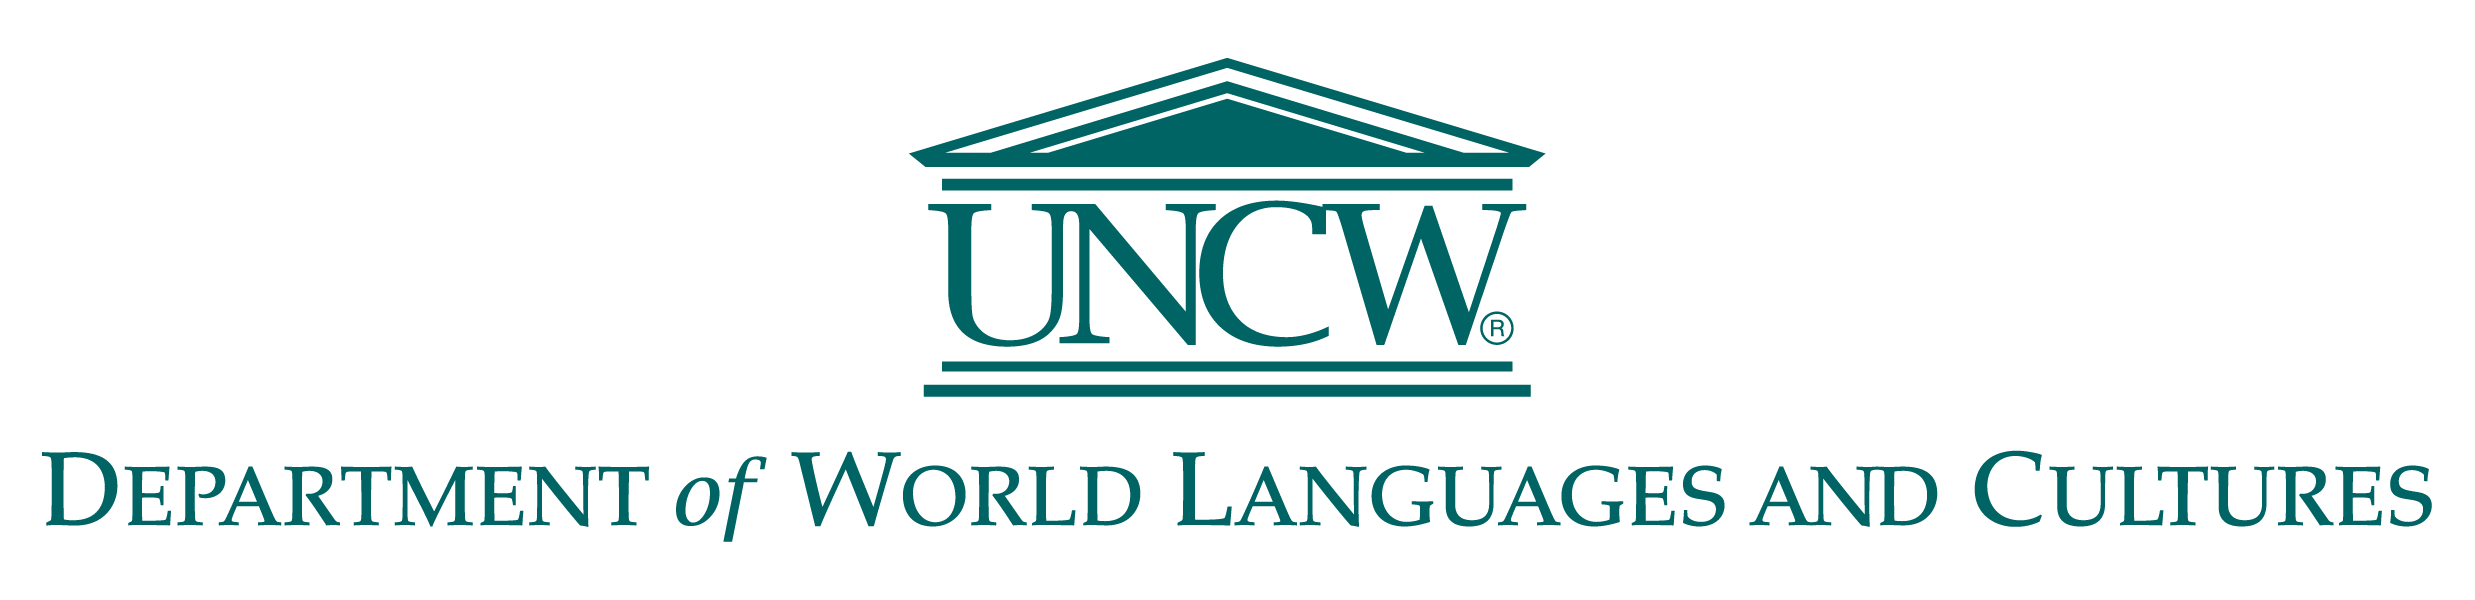 UNCW Department of World Language and Culture